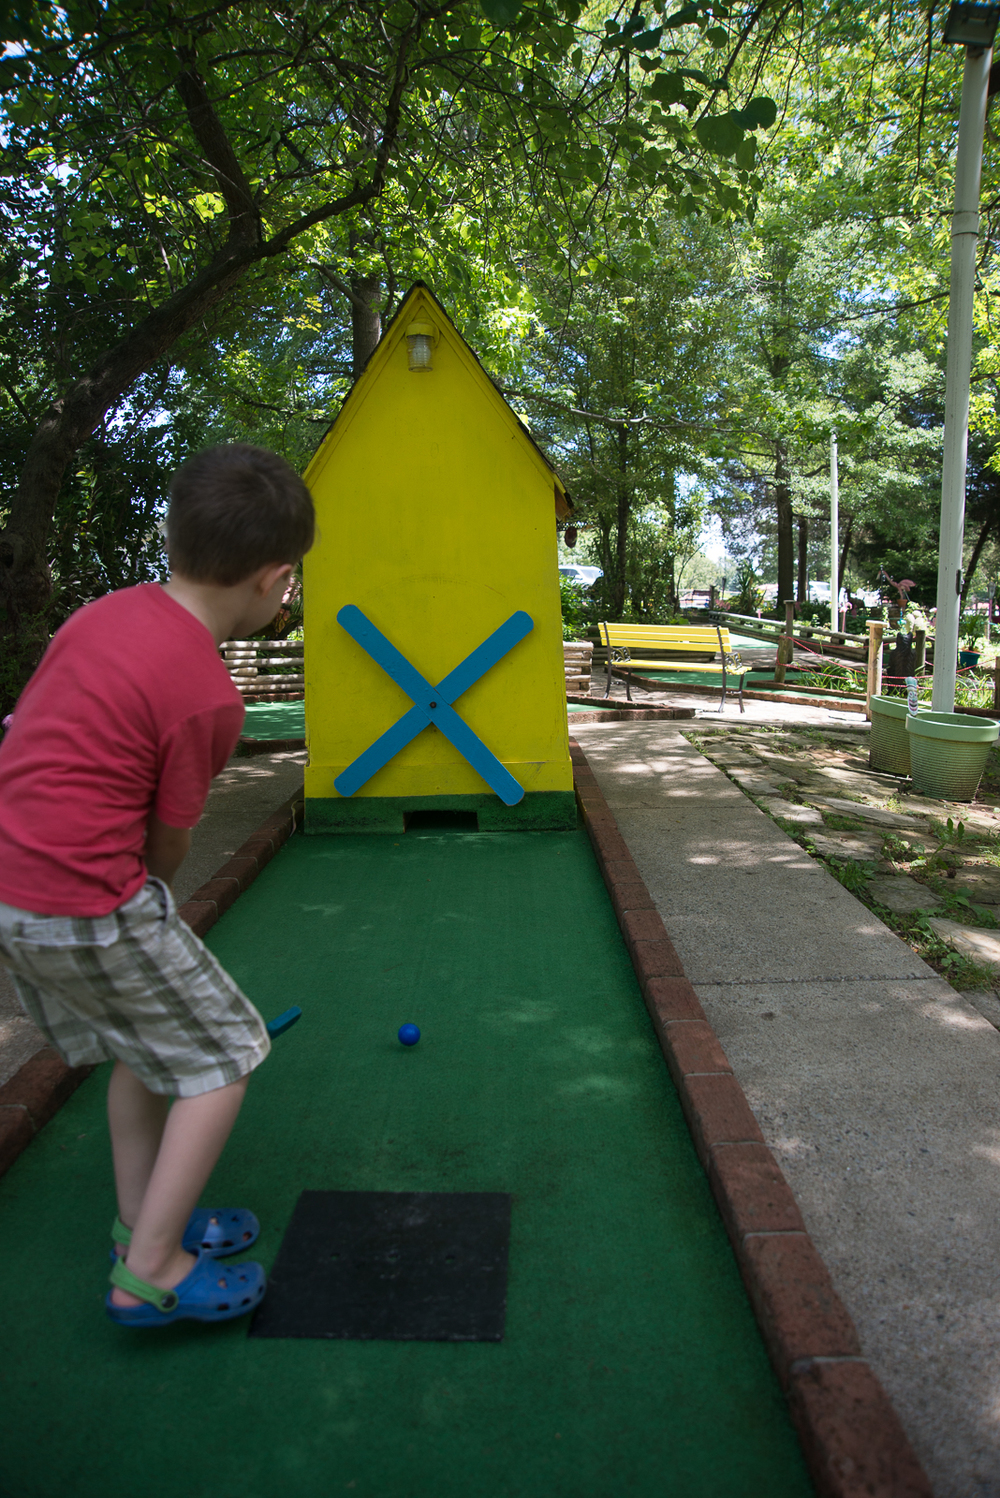 And of course, no trip would be complete to start the summer off right without THREE putt-putt golf adventures. Forgotten Past, The 19th Hole at Patti's and Maggie's Jungle Golf. I still am no good but the boys did great.